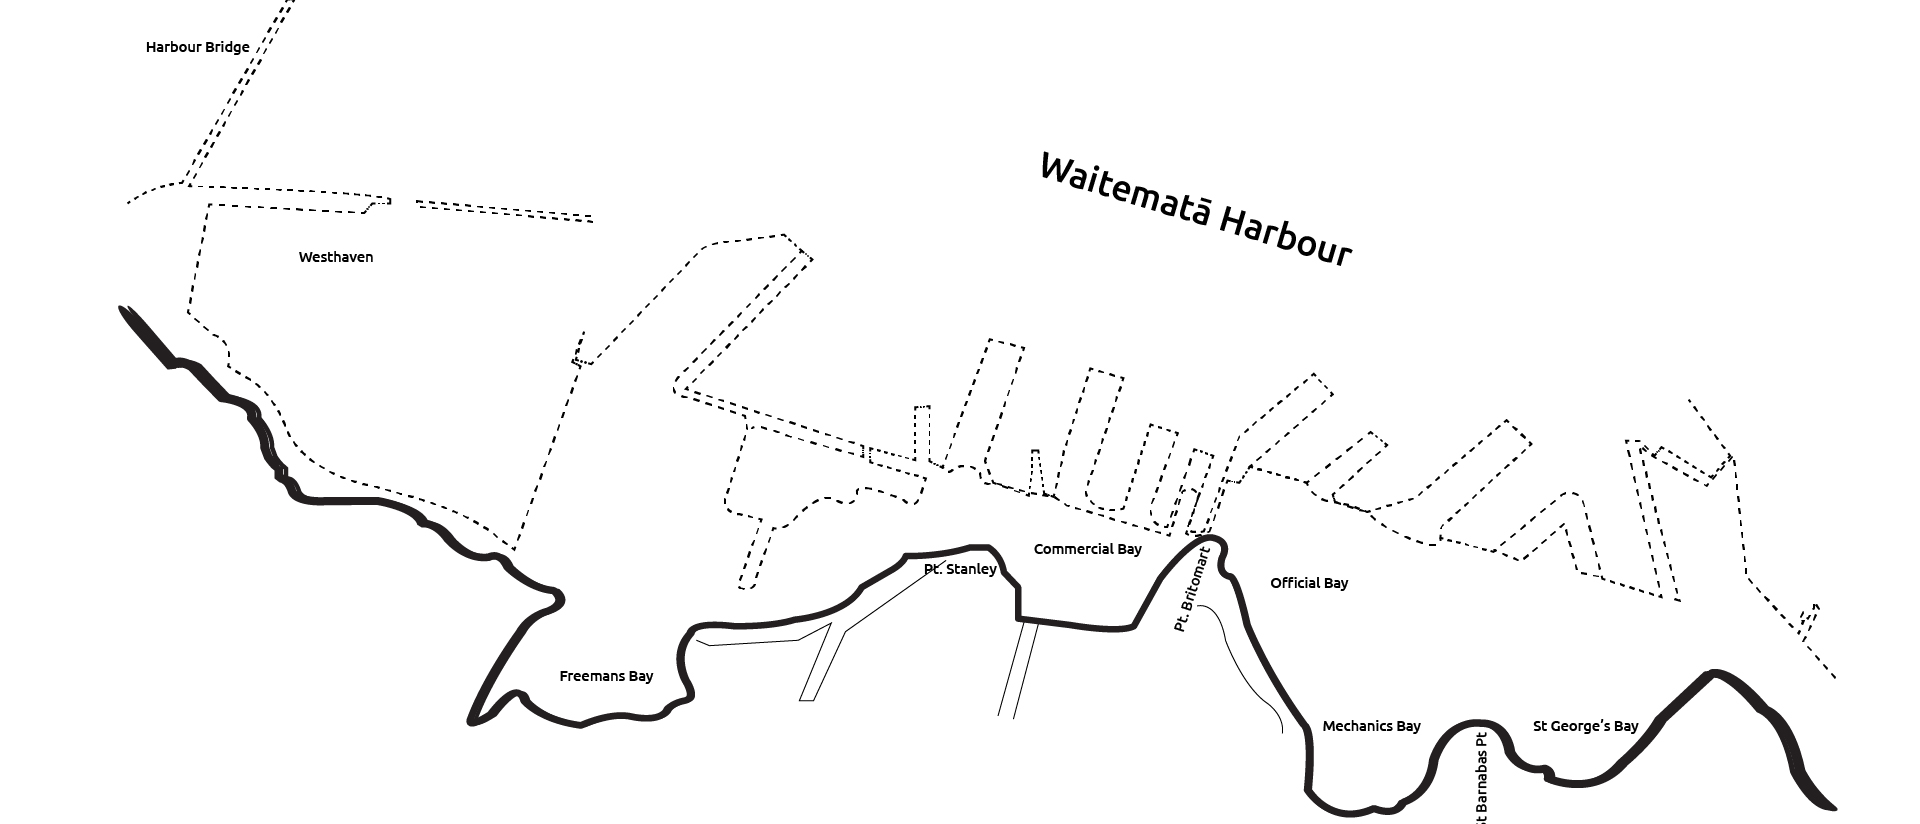 Diagram shows the shoreline of the Waitemata from the CBD with the present day footprint of wharfs shown in a dotted line